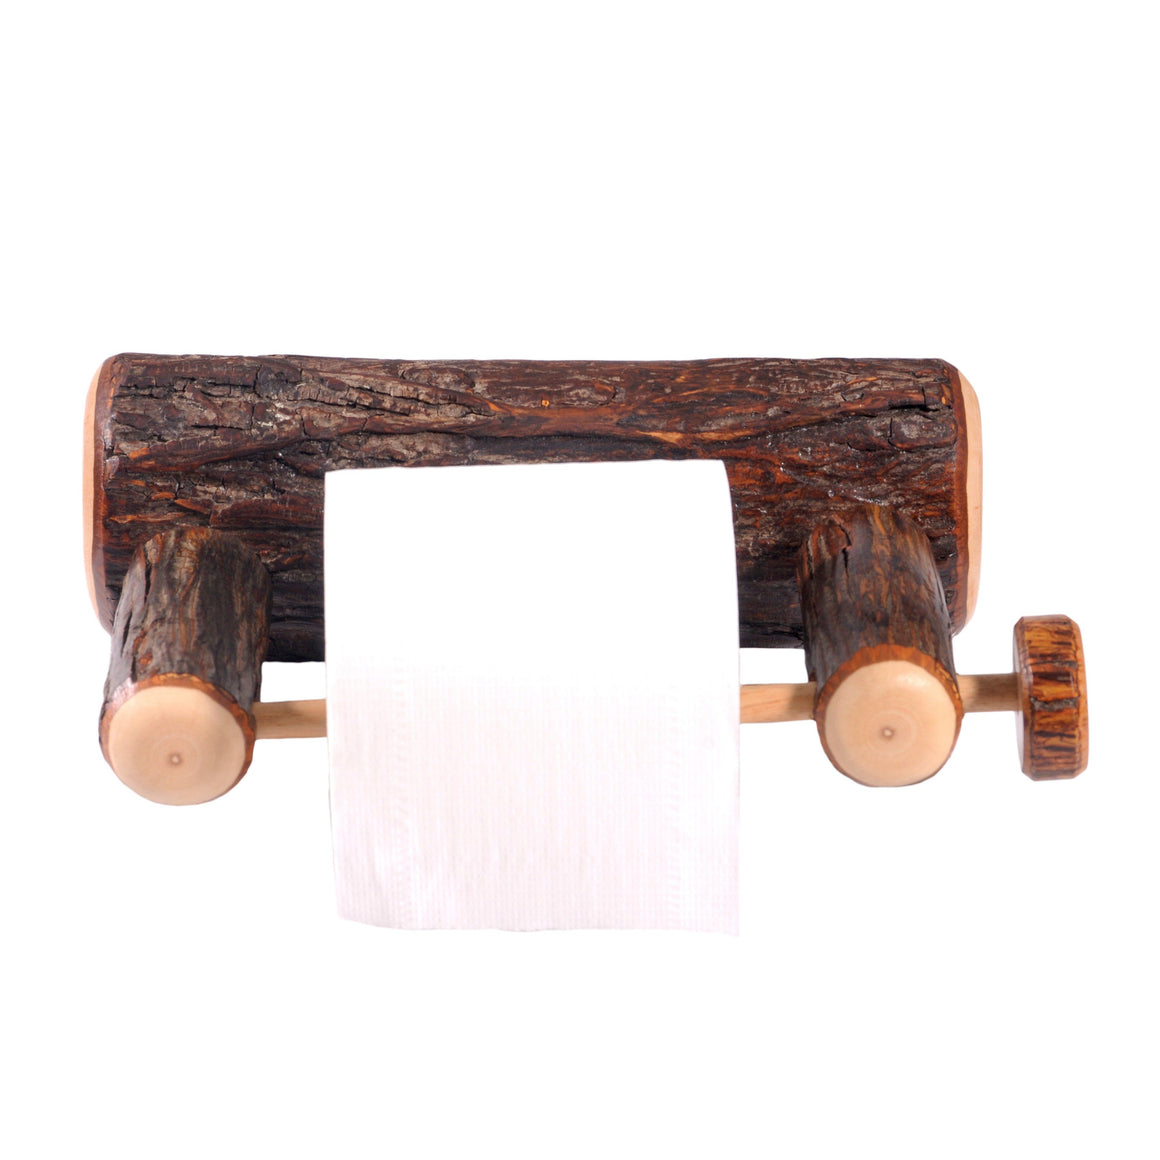 Natural Hickory Log Wall-Mounted Toilet Paper Holder - Rustic Deco Incorporated